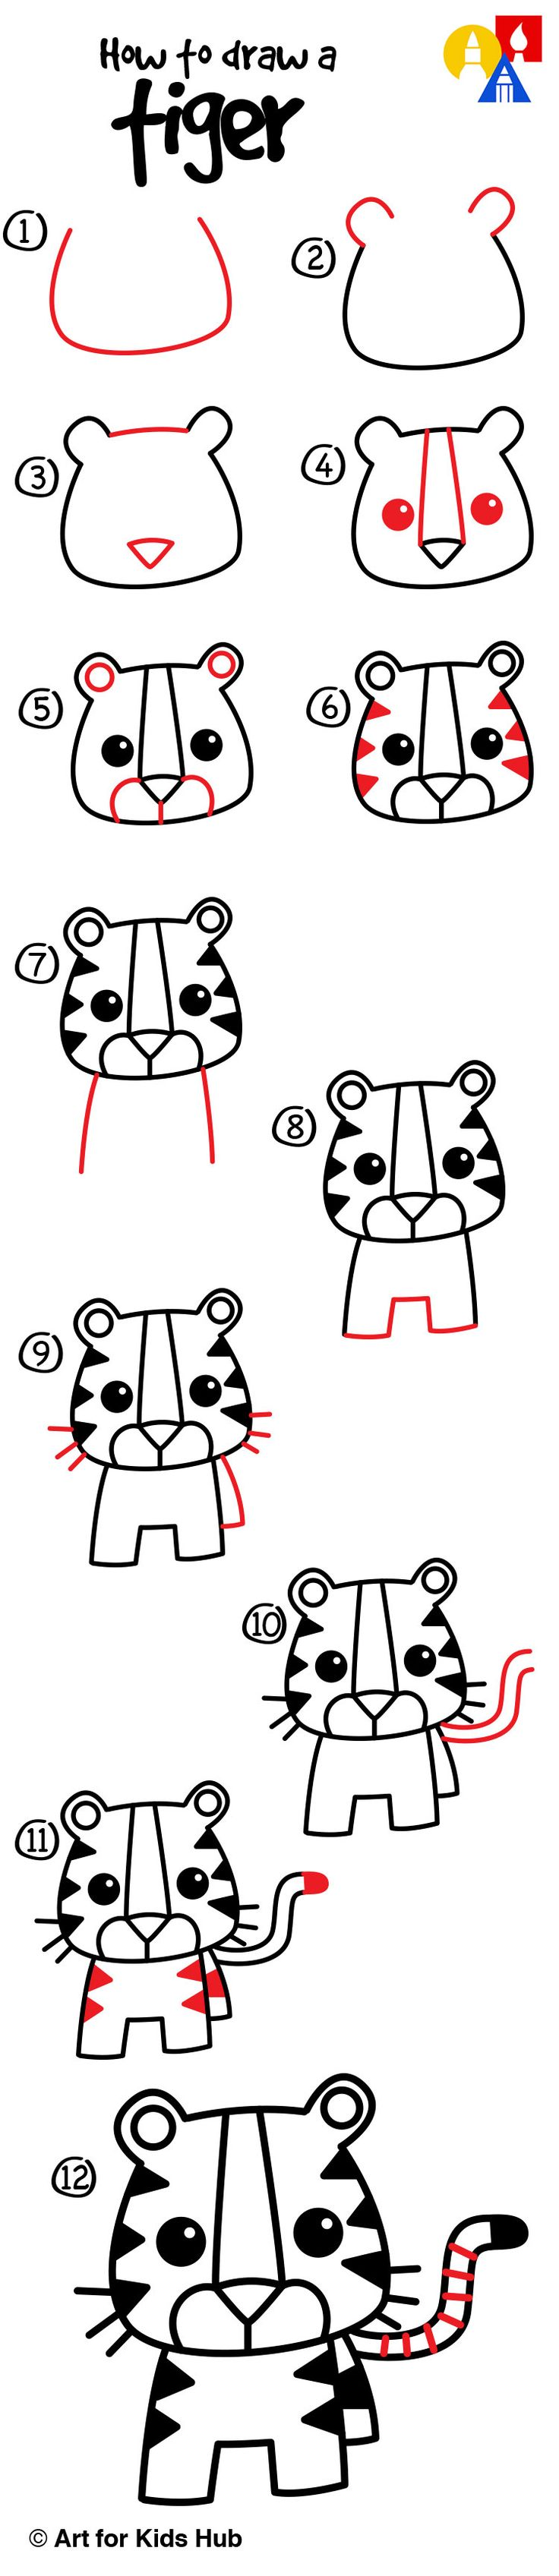 how to draw a cartoon tiger art for kids hub - Images For Drawing For Kids